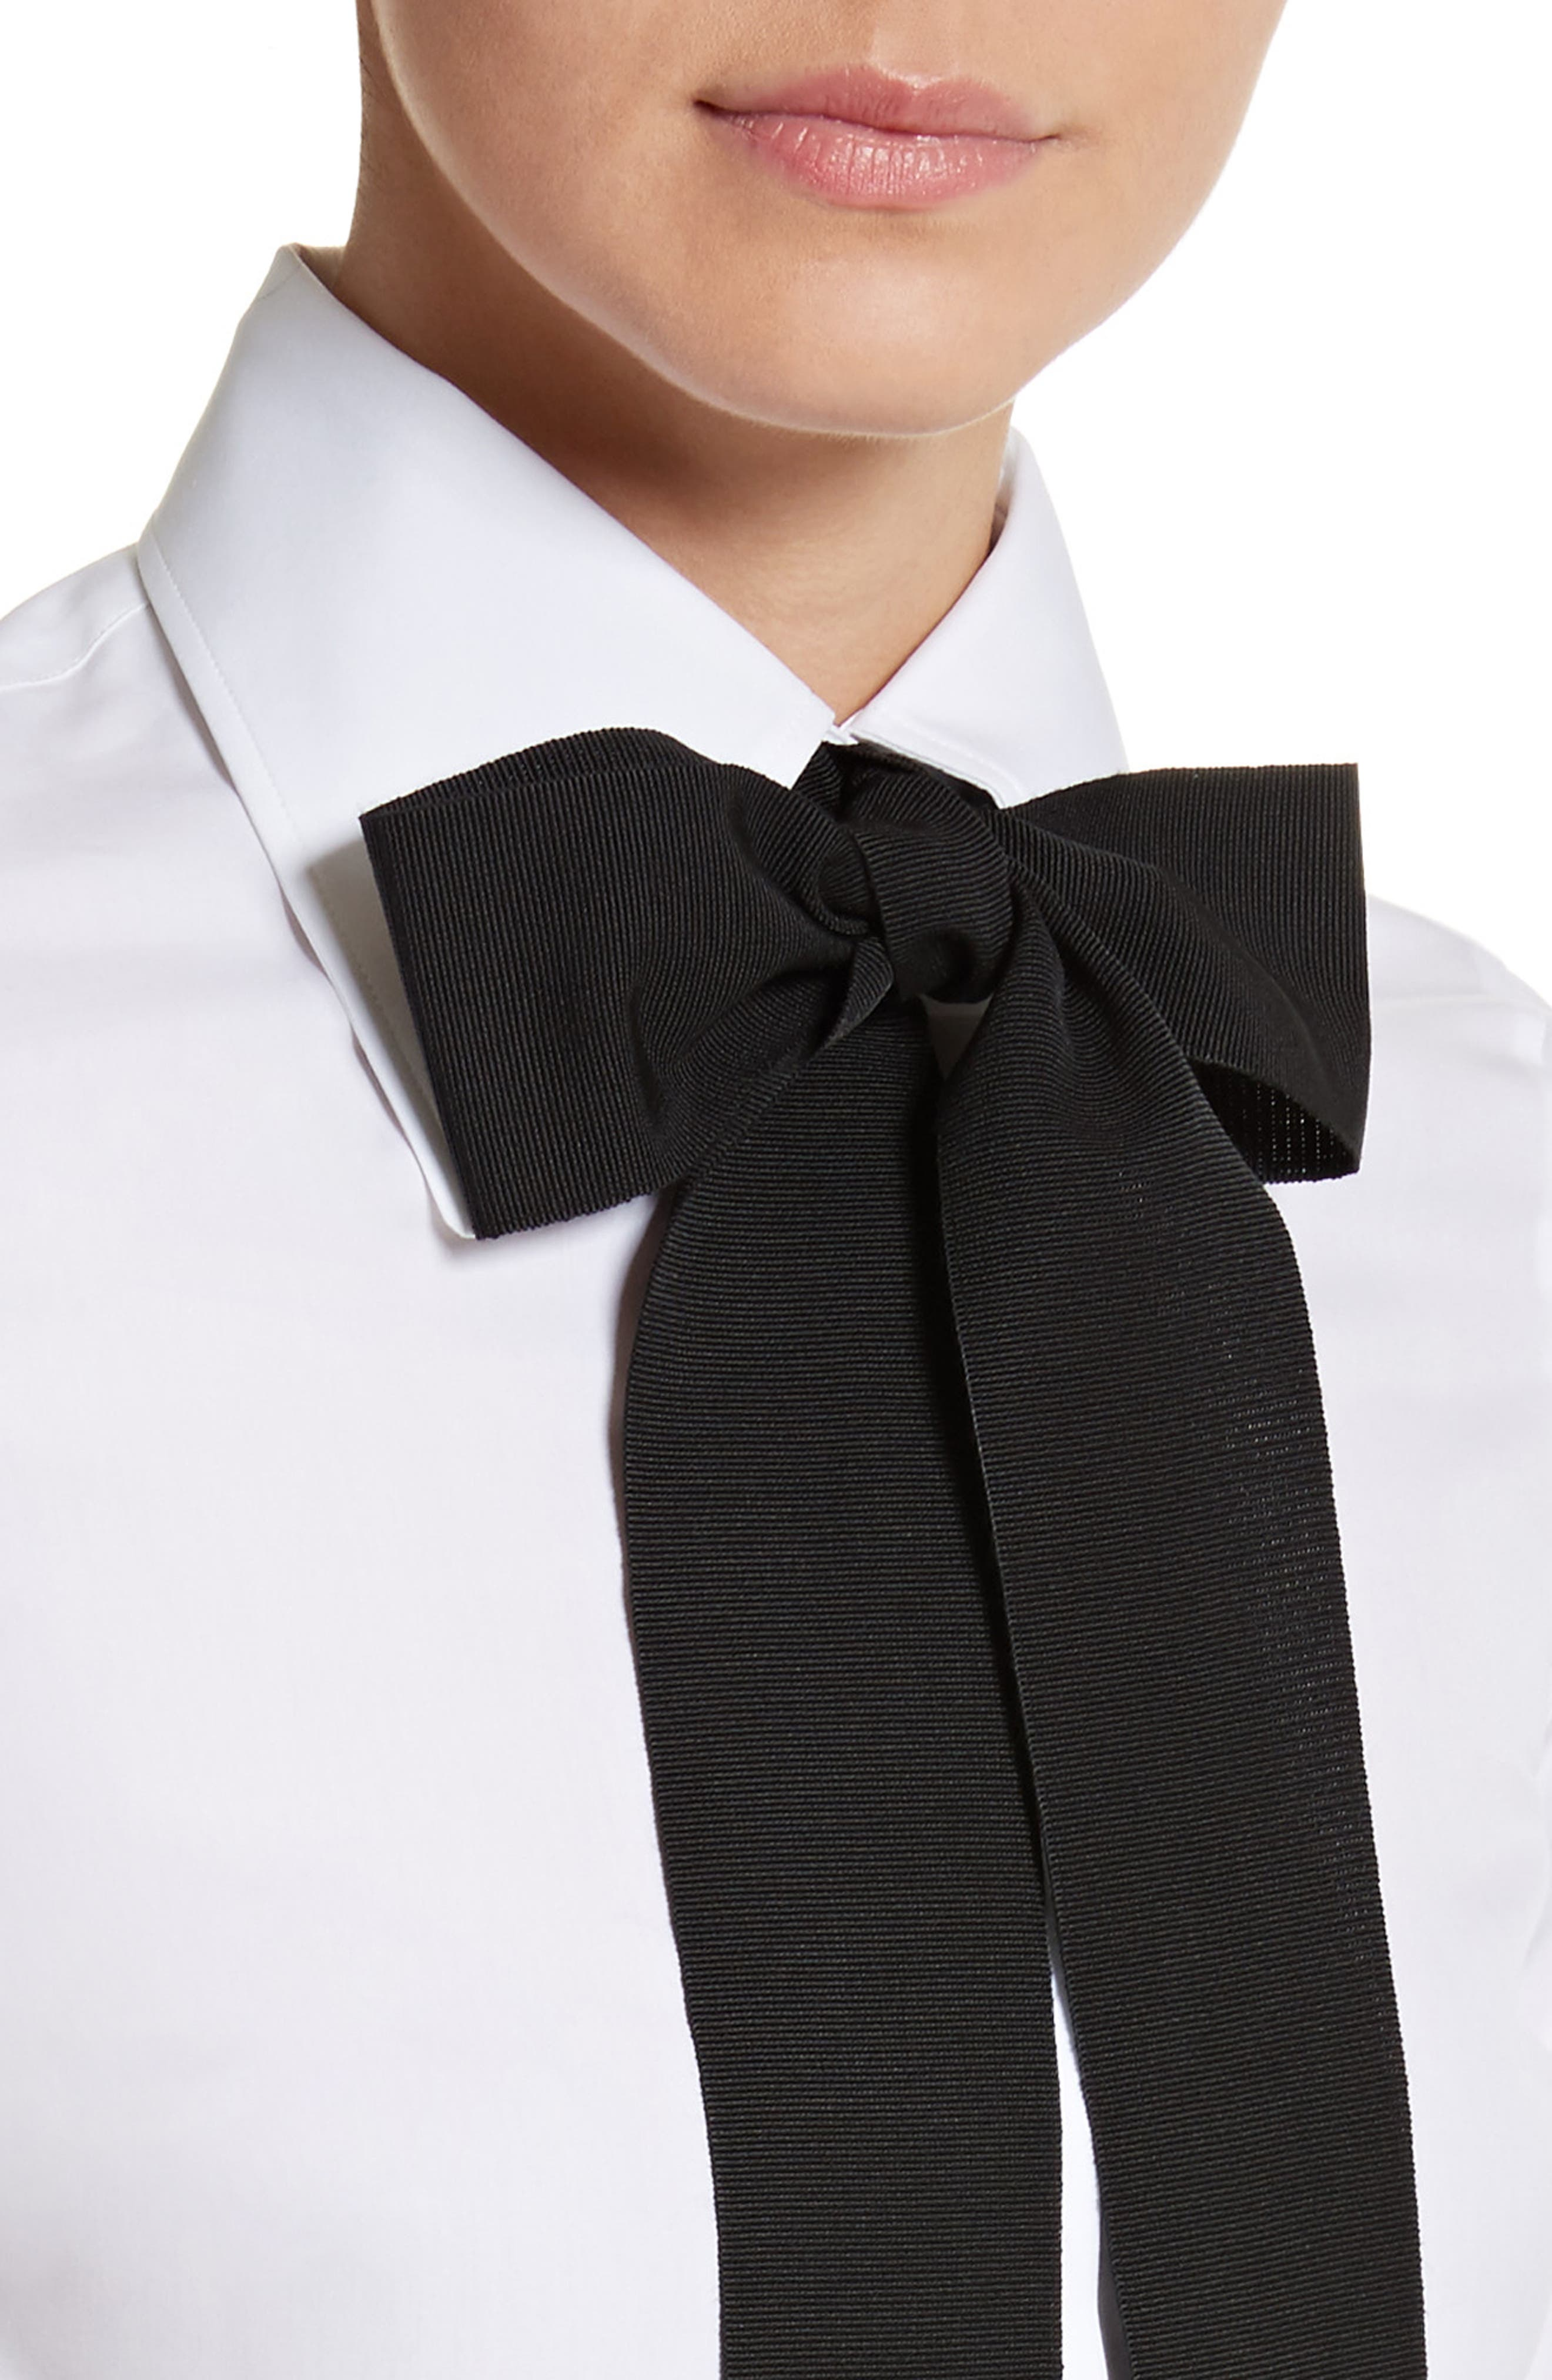 Cotton Poplin Blouse with Bow,                             Alternate thumbnail 4, color,                             101